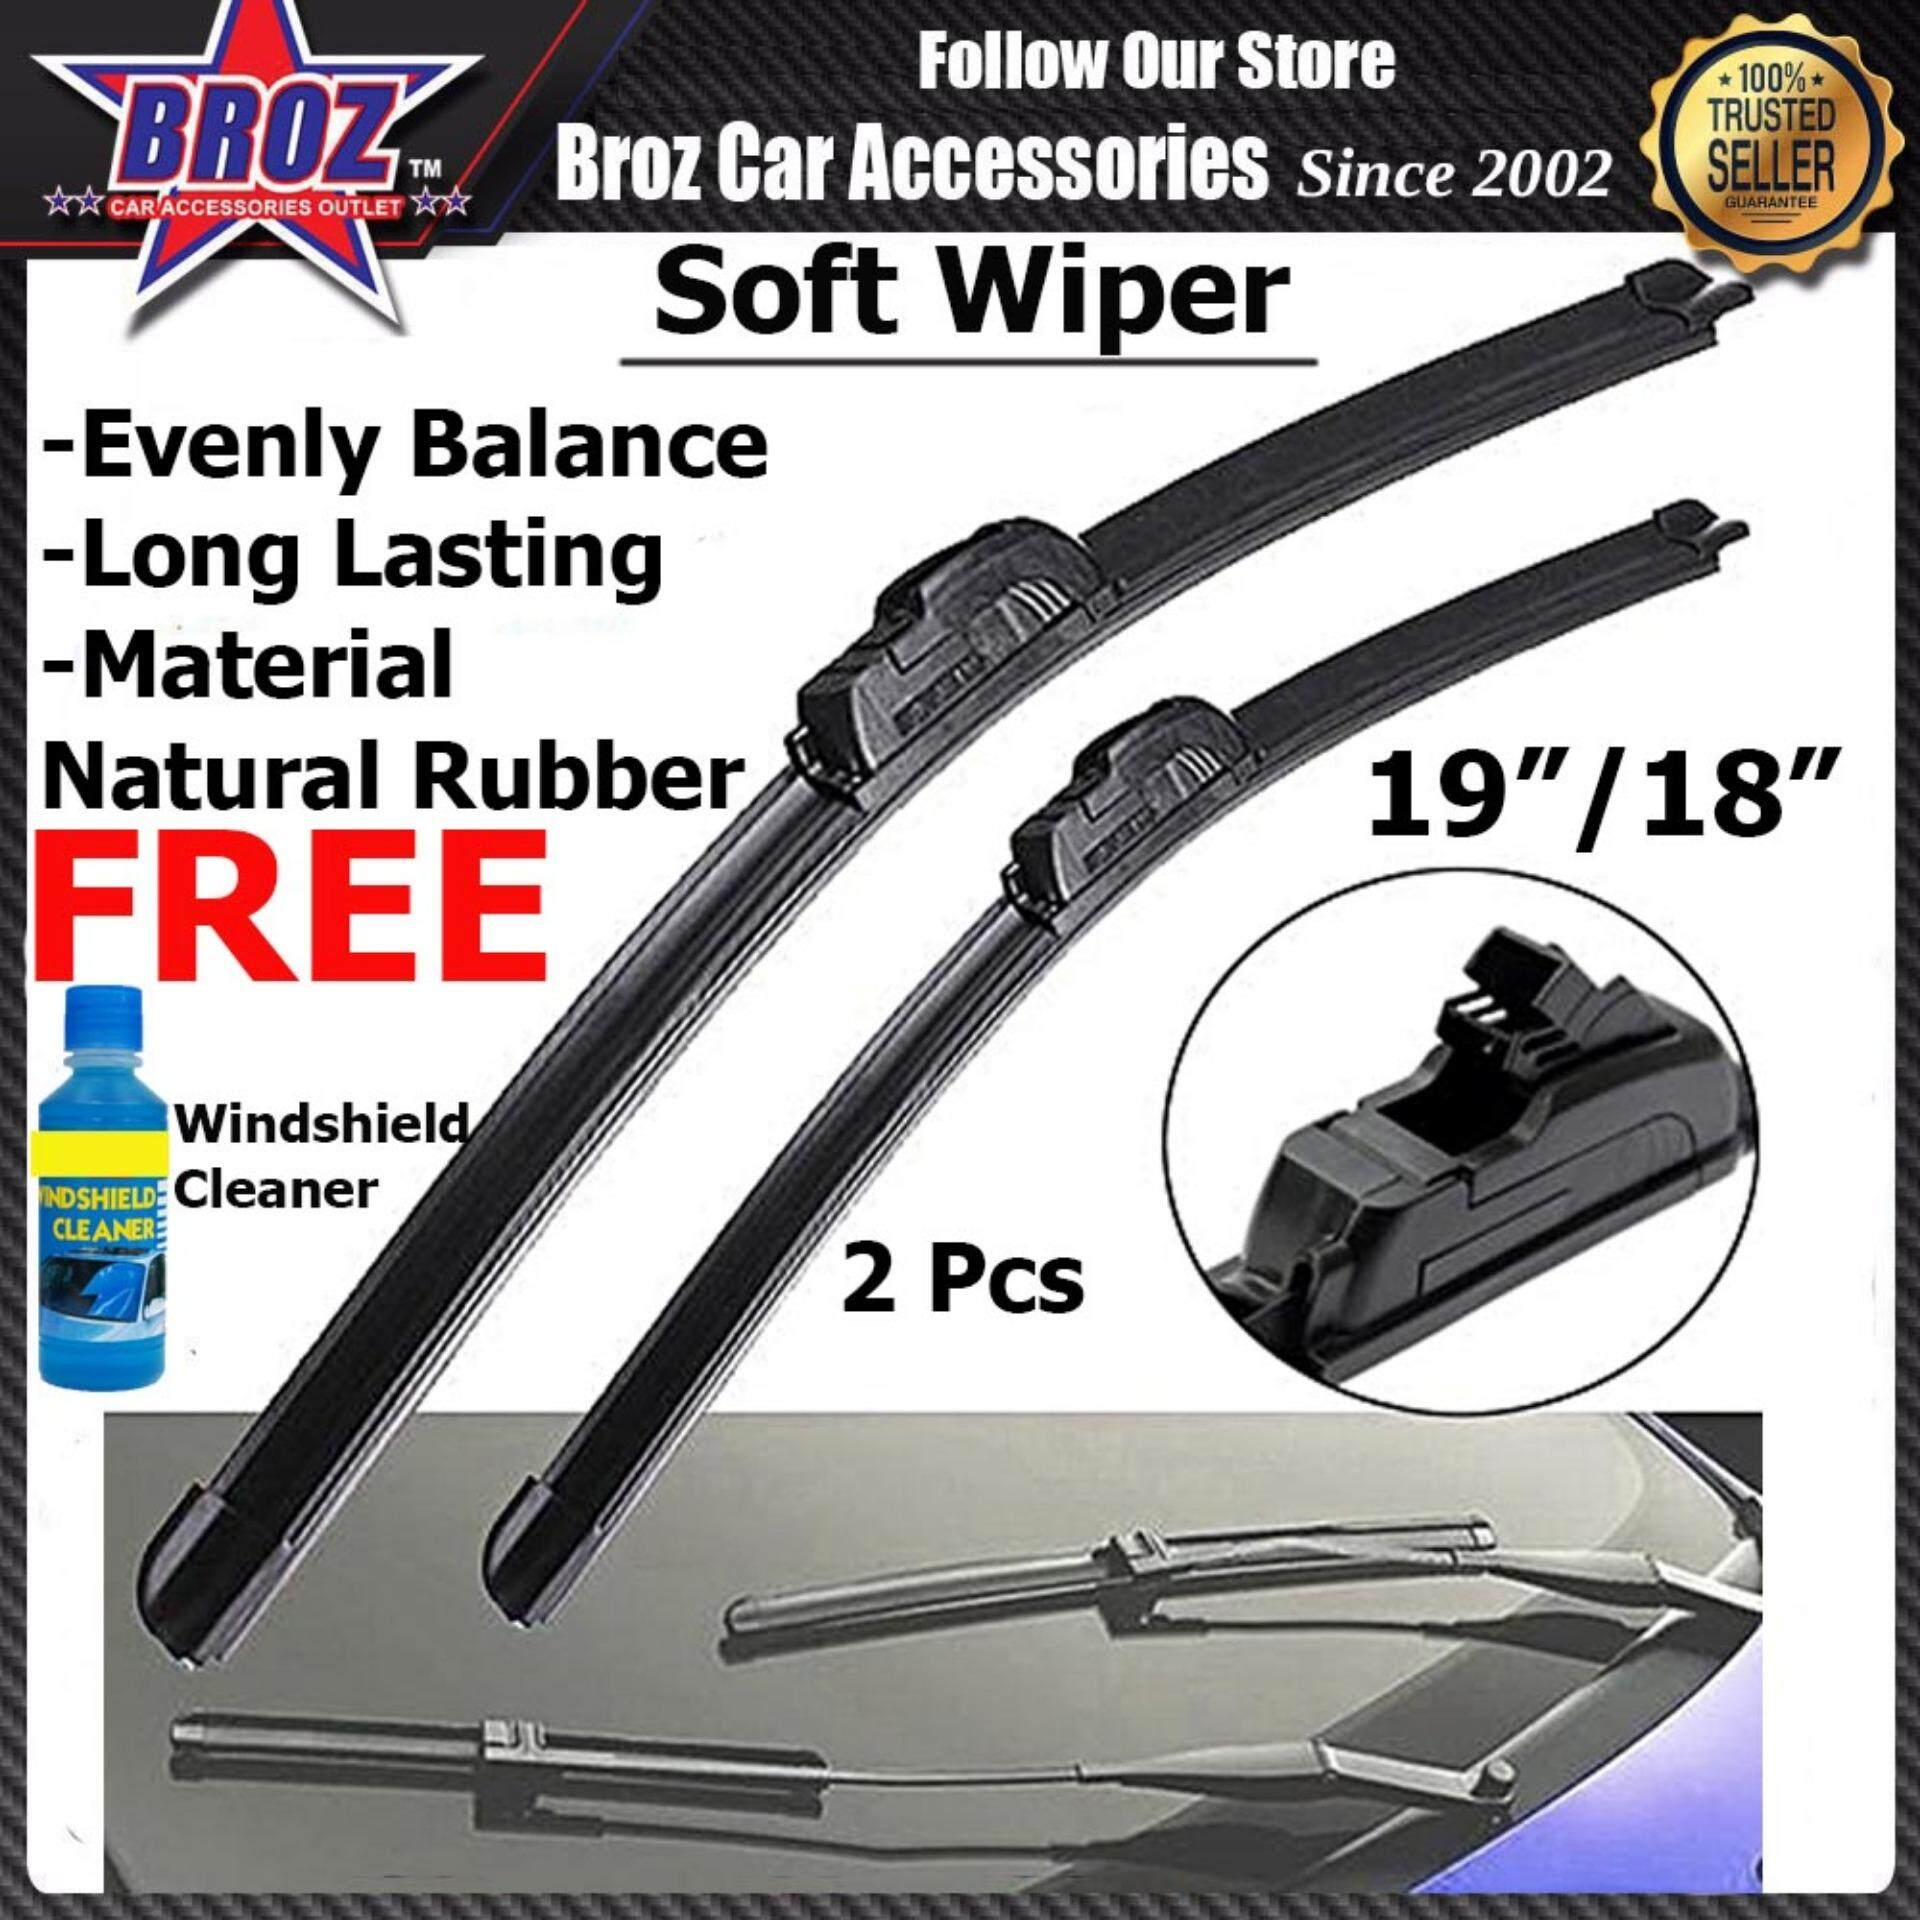 "Iswara Saga Old City 1996-2002 Civic So4  Civiv 1.7 Vtec Car Natural Rubber Soft Wiper 19""/18"" (2pcs)"